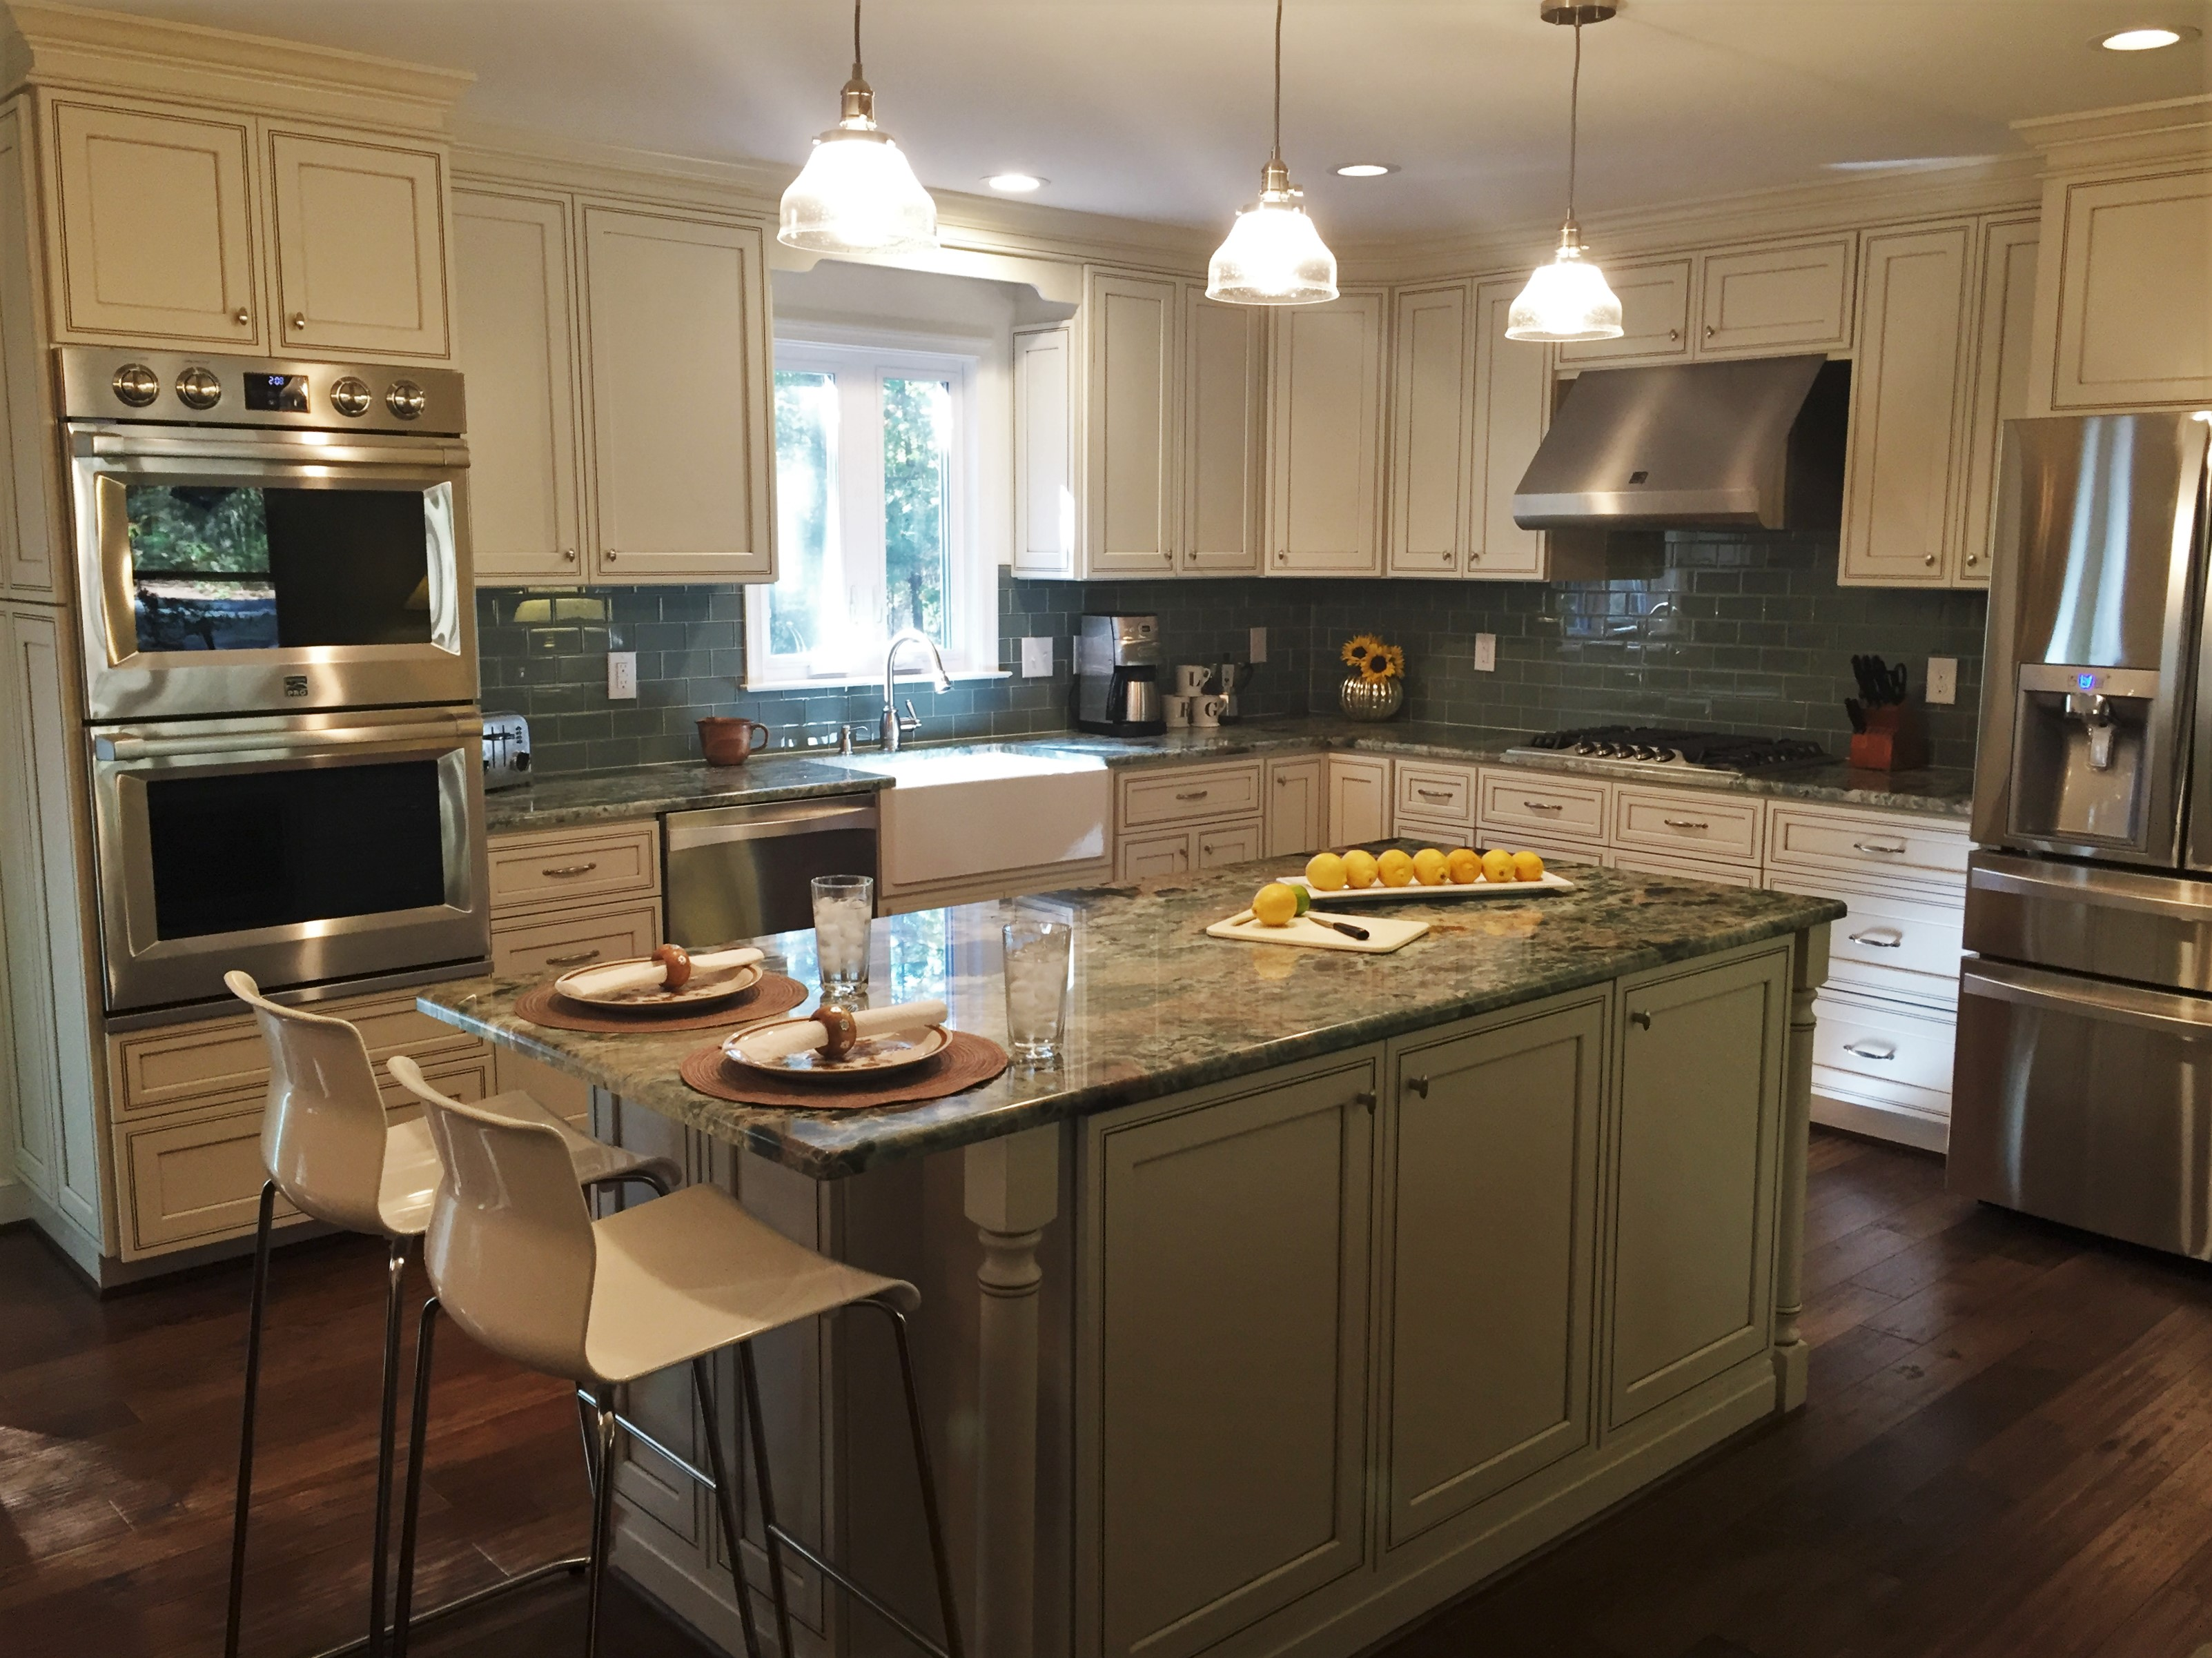 Kitchen Remodel with New Layout